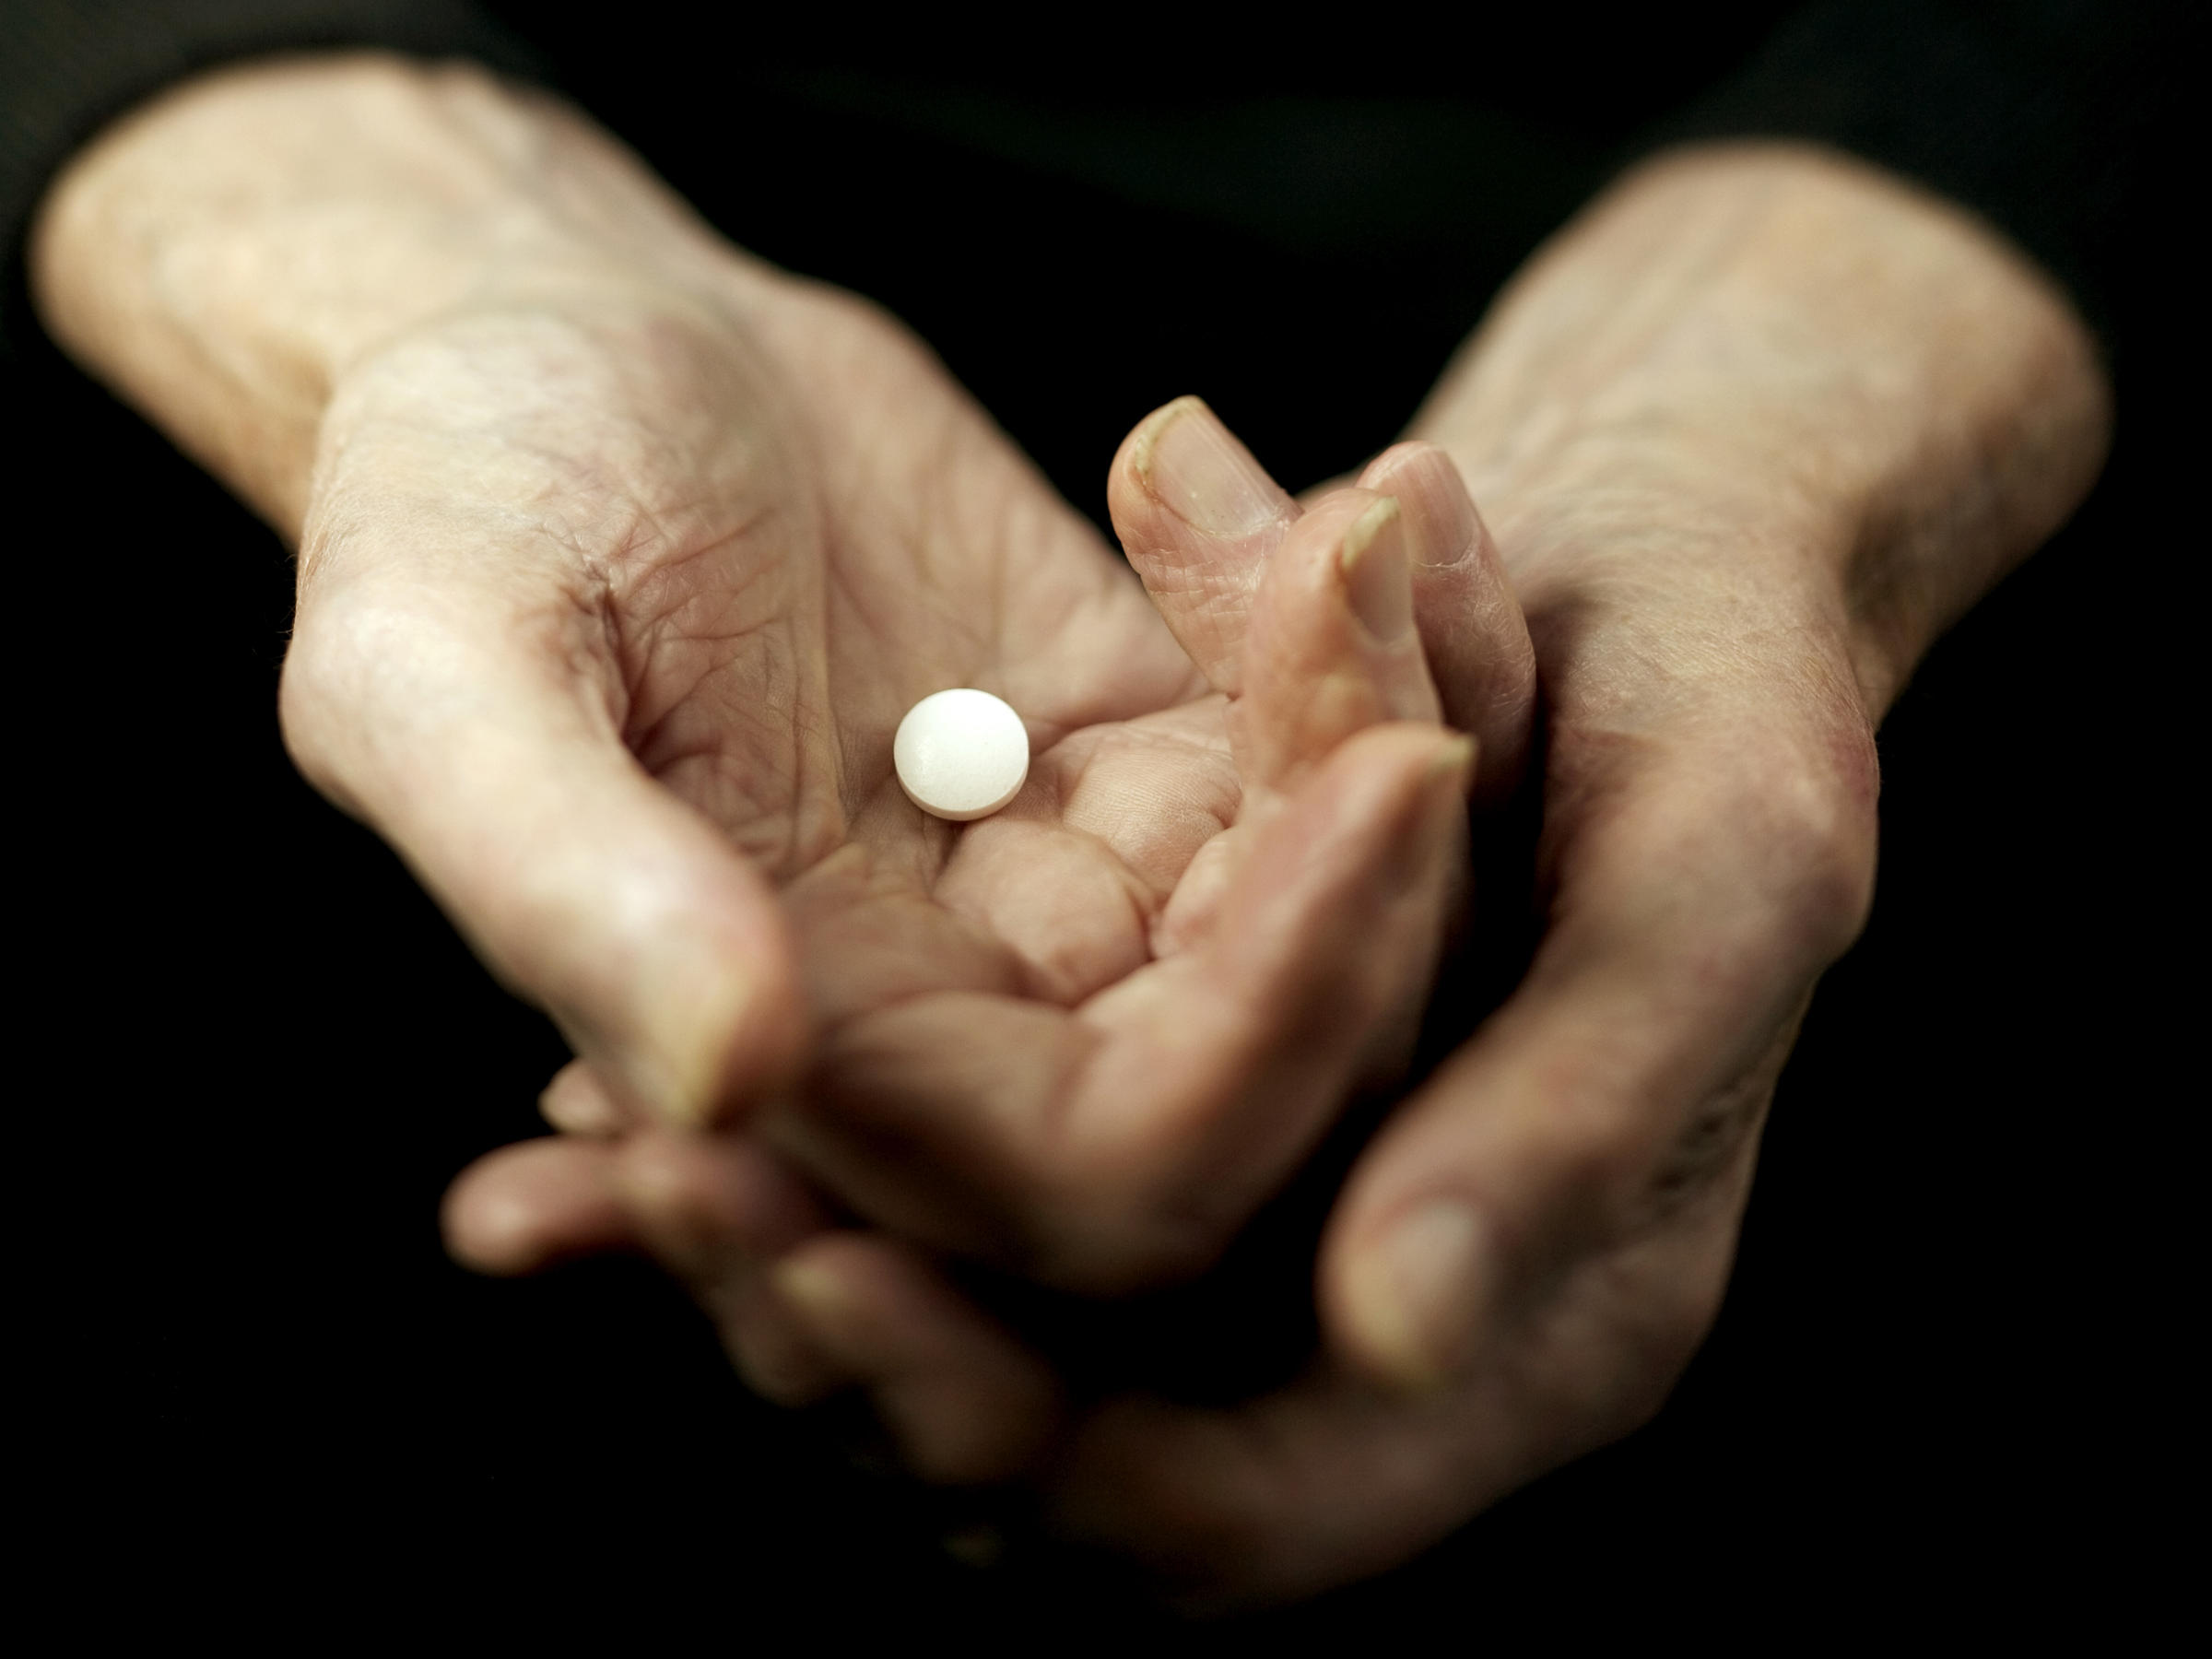 Nursing homes sedate residents with dementia by misusing antipsychotic drugs, report finds